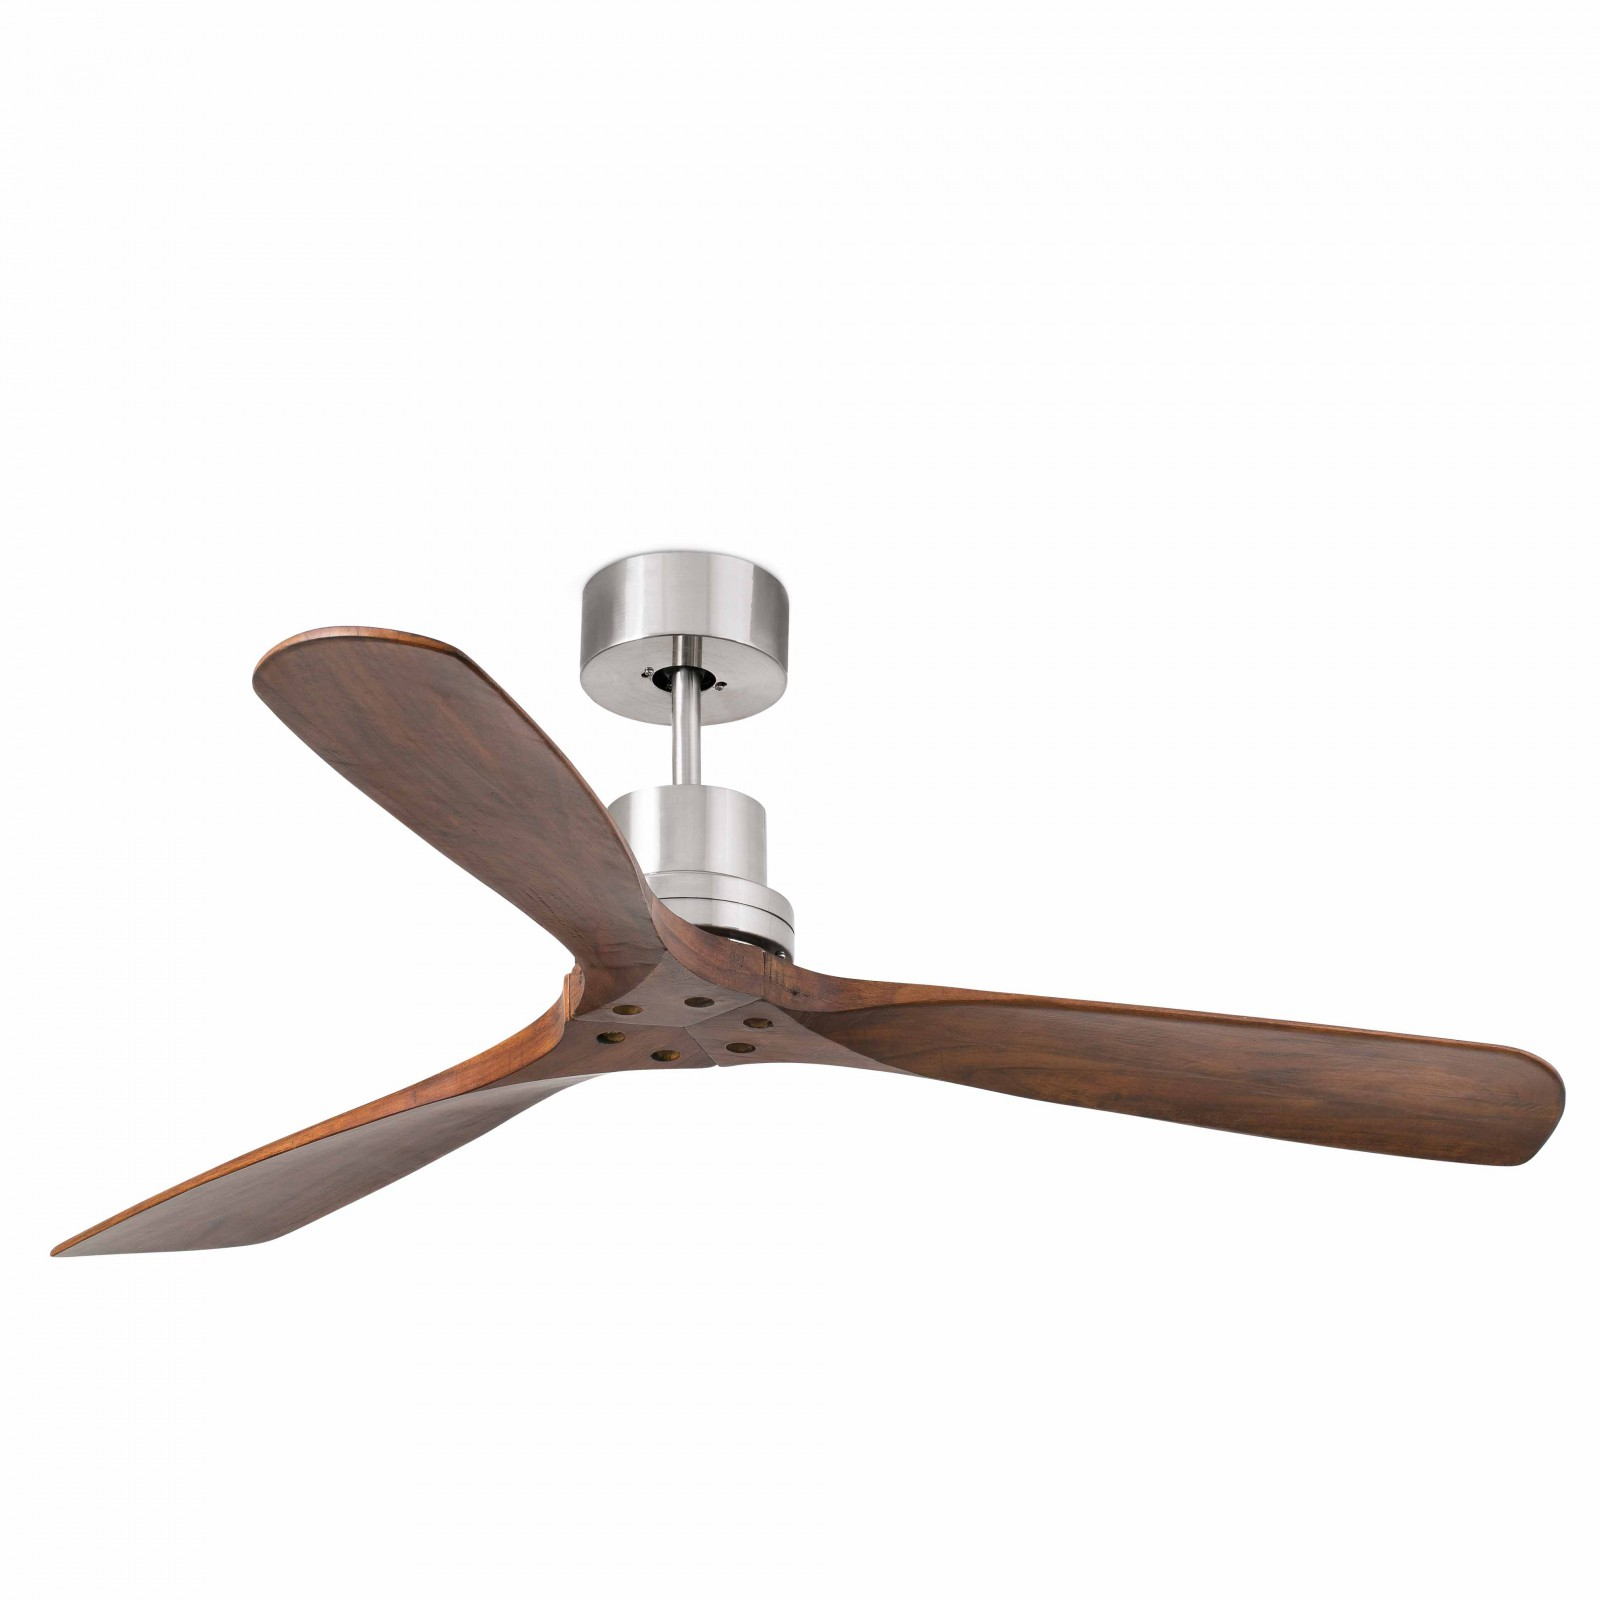 Faro ceiling fan lantau nickel matt blades walnut 132 cm 52 with faro ceiling fan lantau nickel matt blades walnut 132 cm 52quot with remote control aloadofball Choice Image